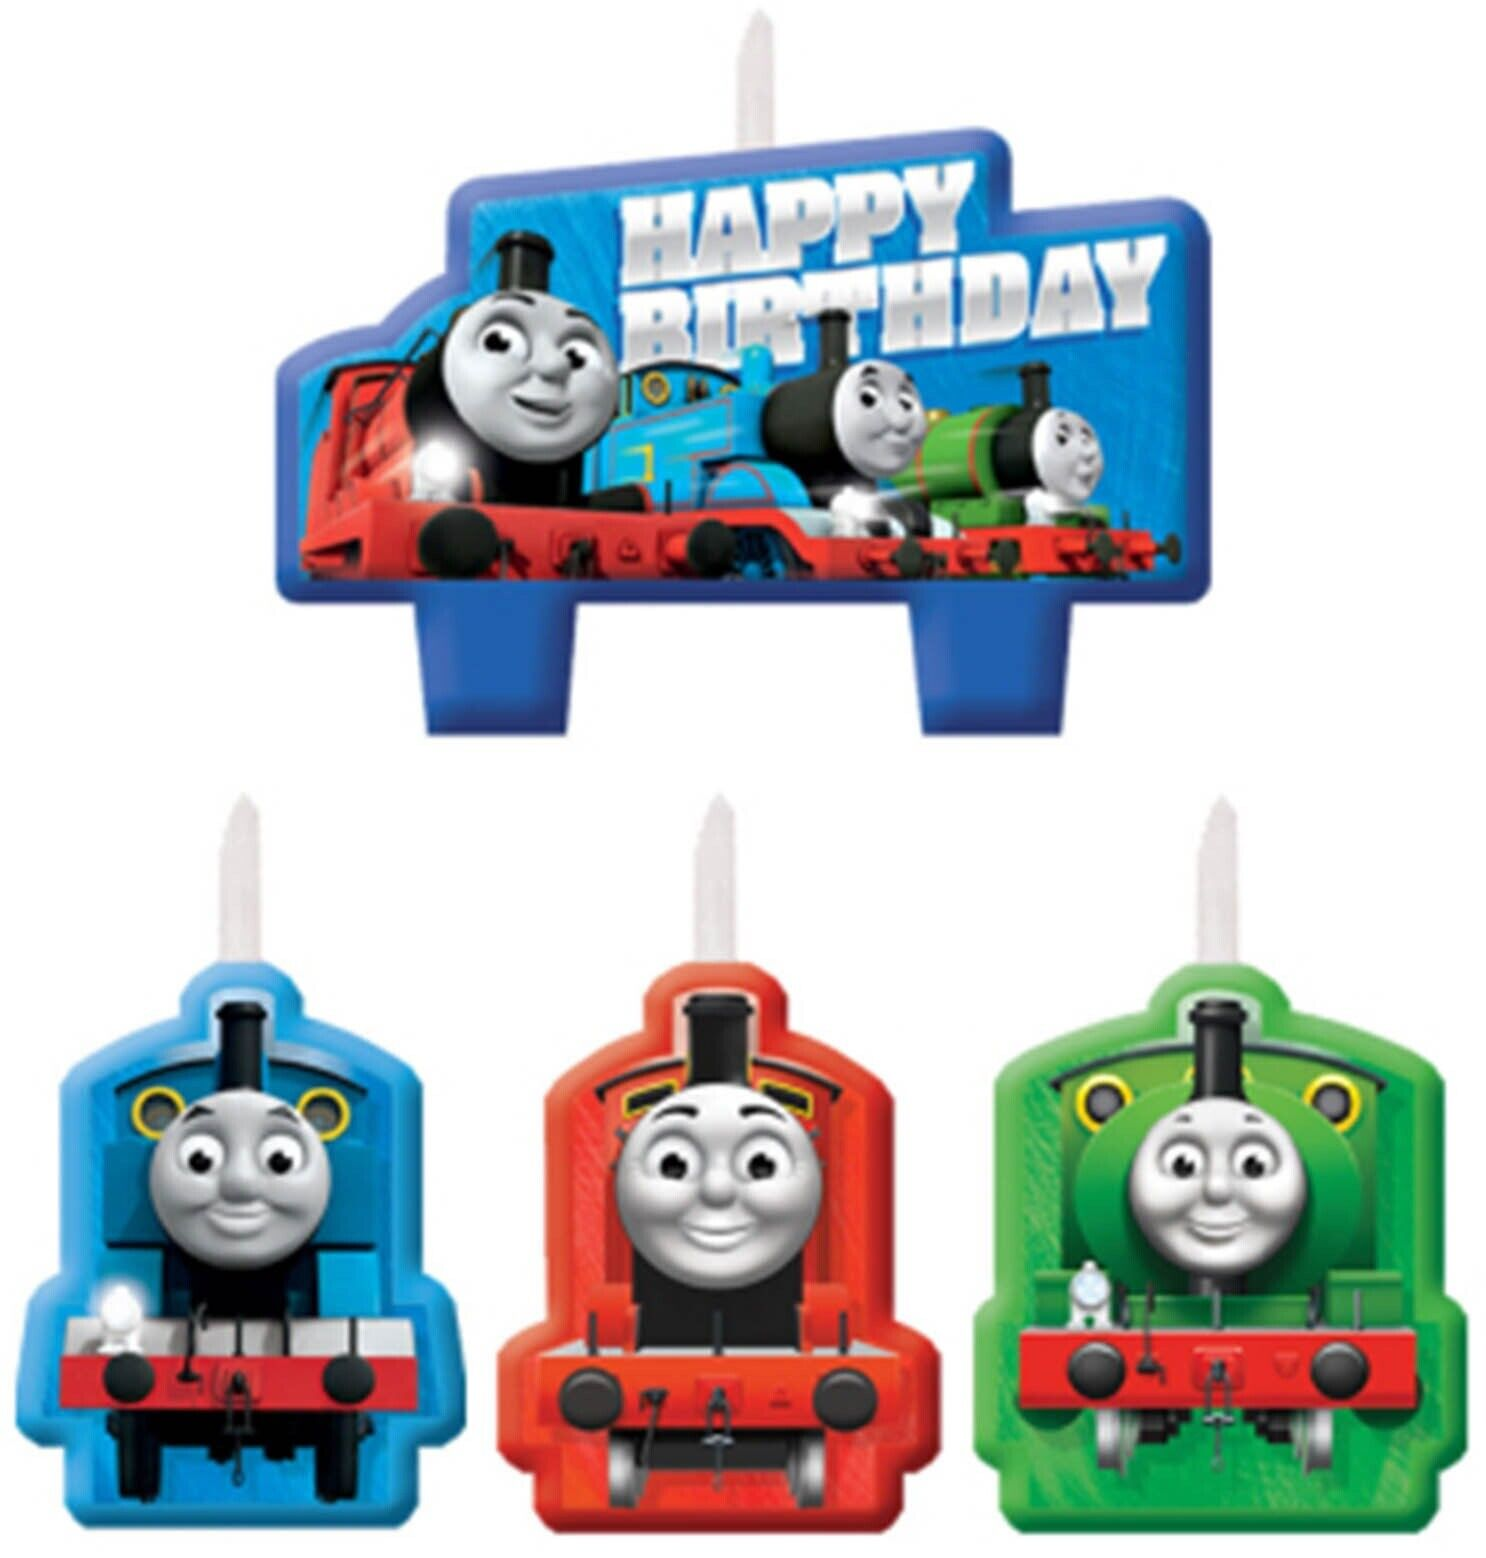 Pleasing Thomas The Tank Friends Train Birthday Cake Candle Set 4Pcs Funny Birthday Cards Online Fluifree Goldxyz